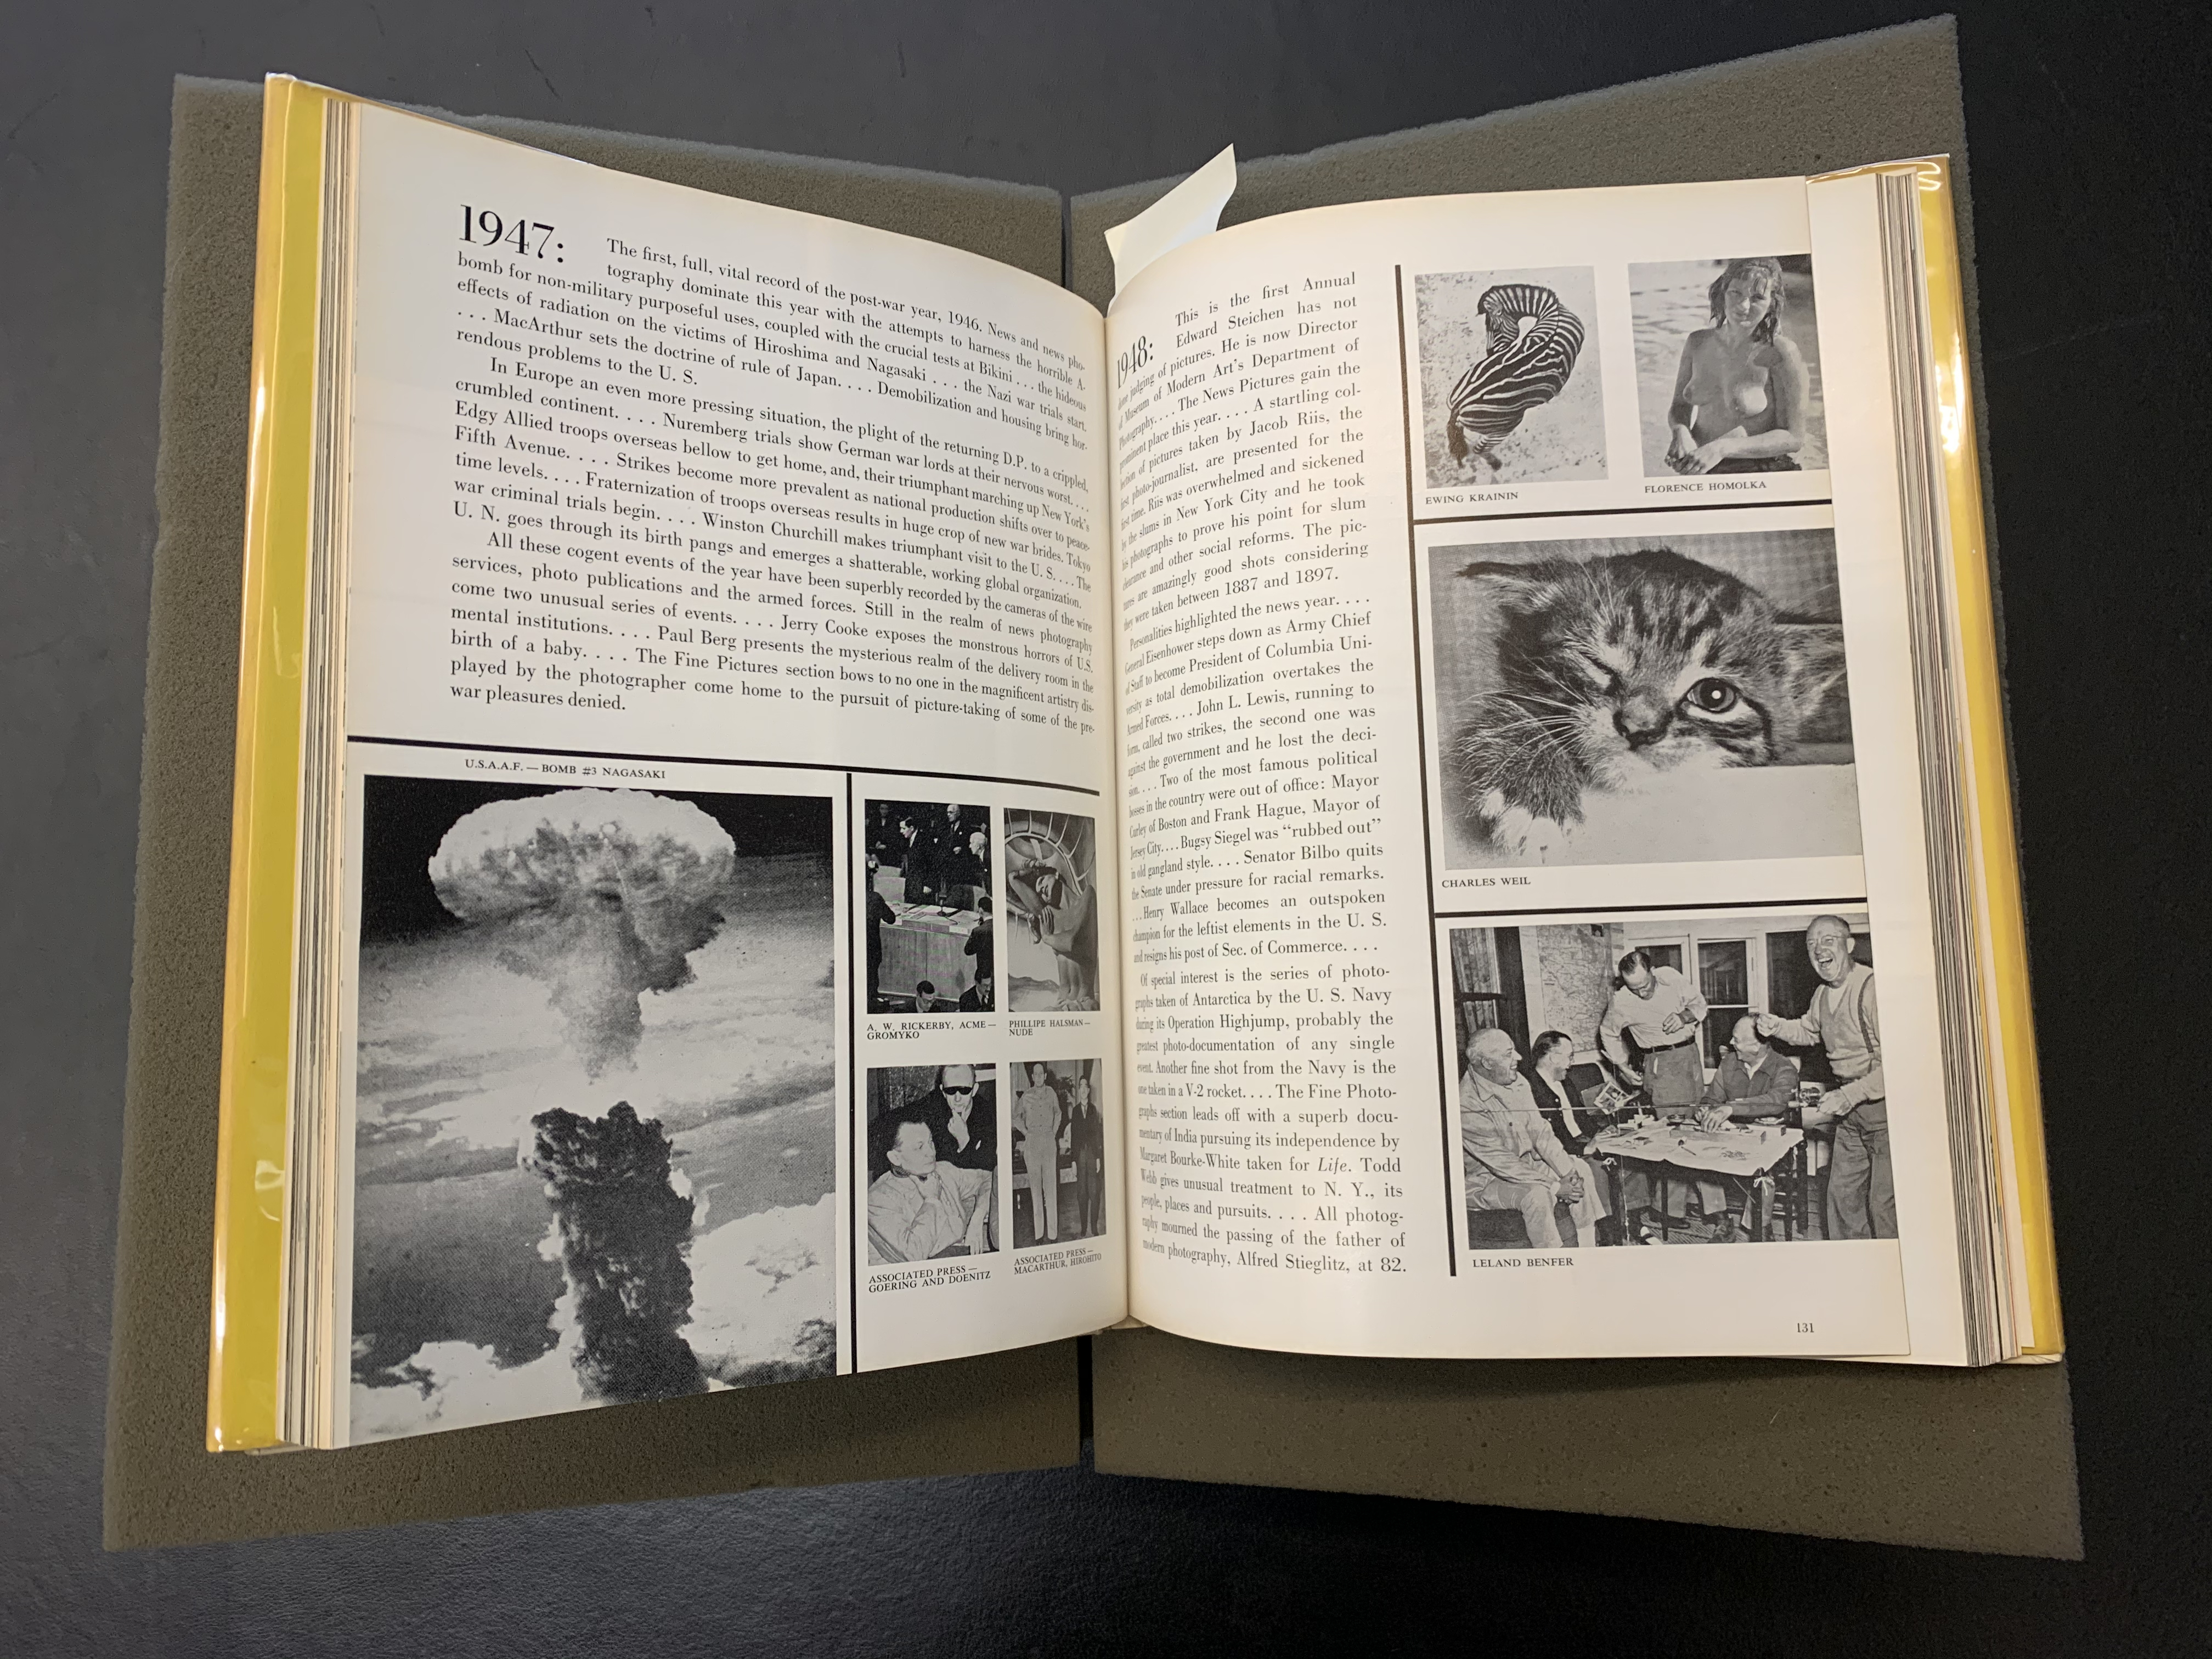 Open copy of The Picture Universe showing photographs from the year 1947